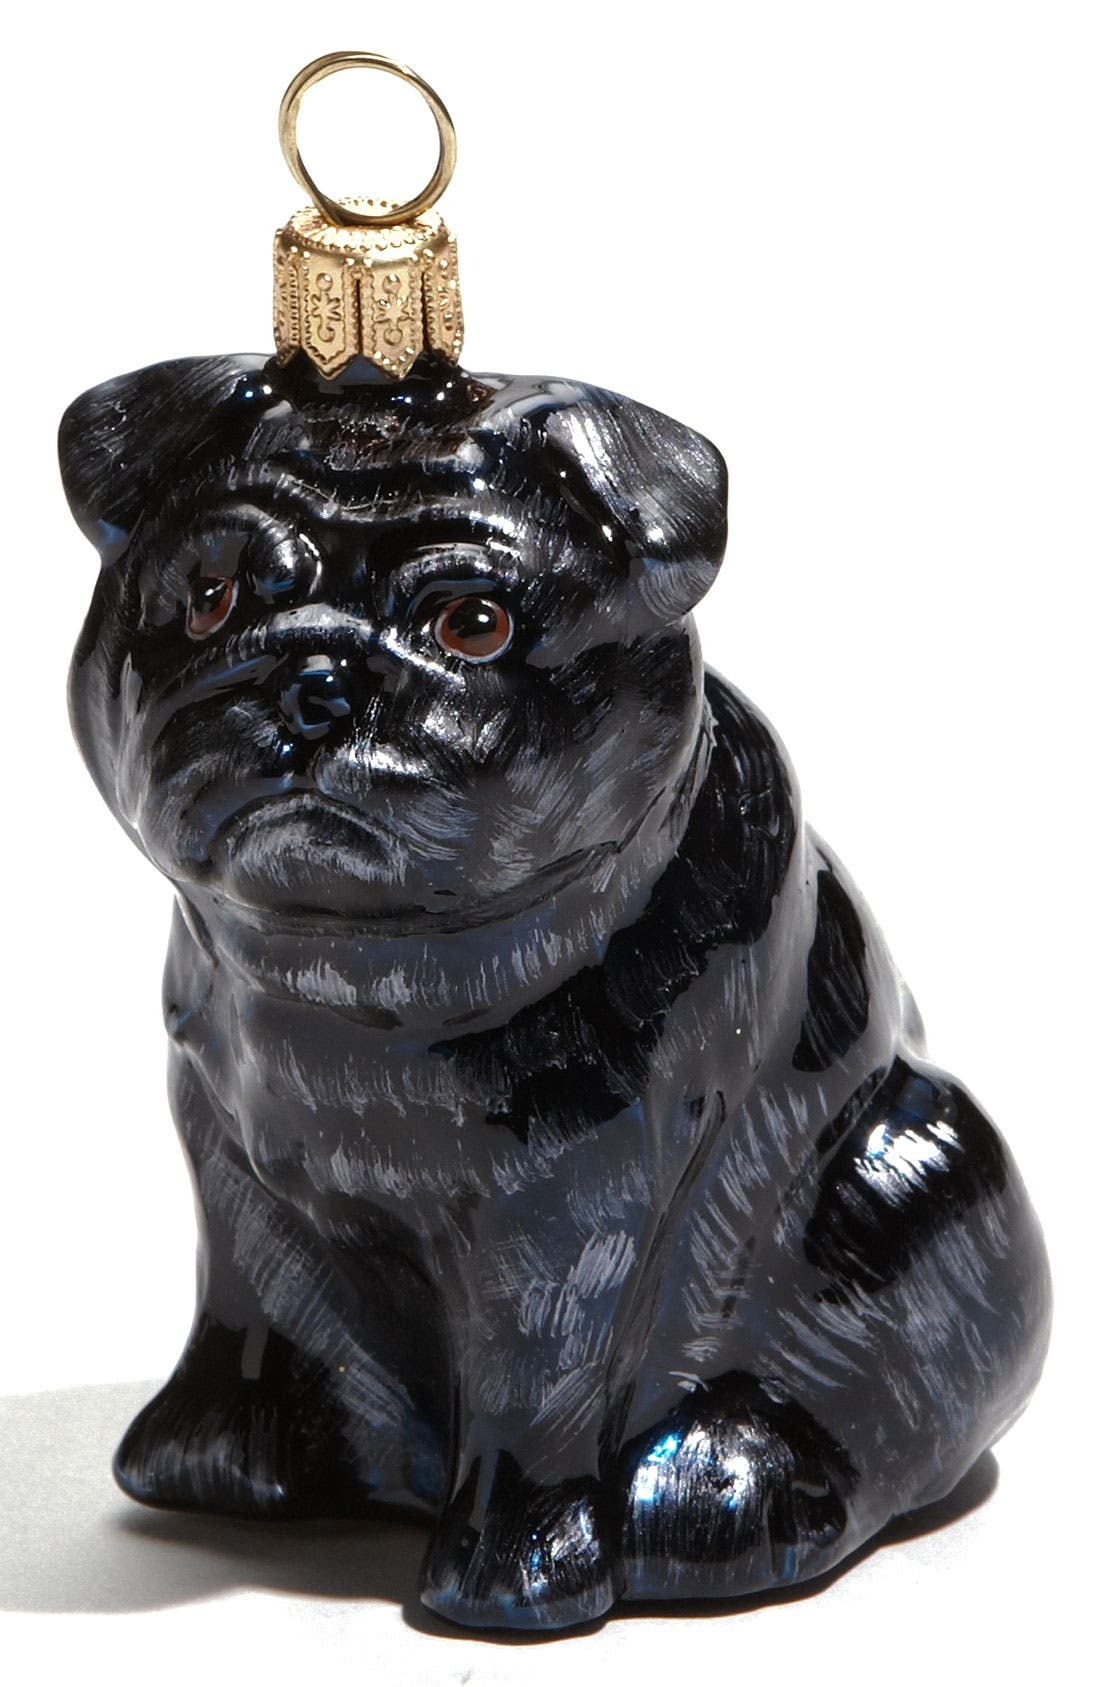 Alternate Image 1 Selected - Joy to the World Collectibles 'Pug' Ornament